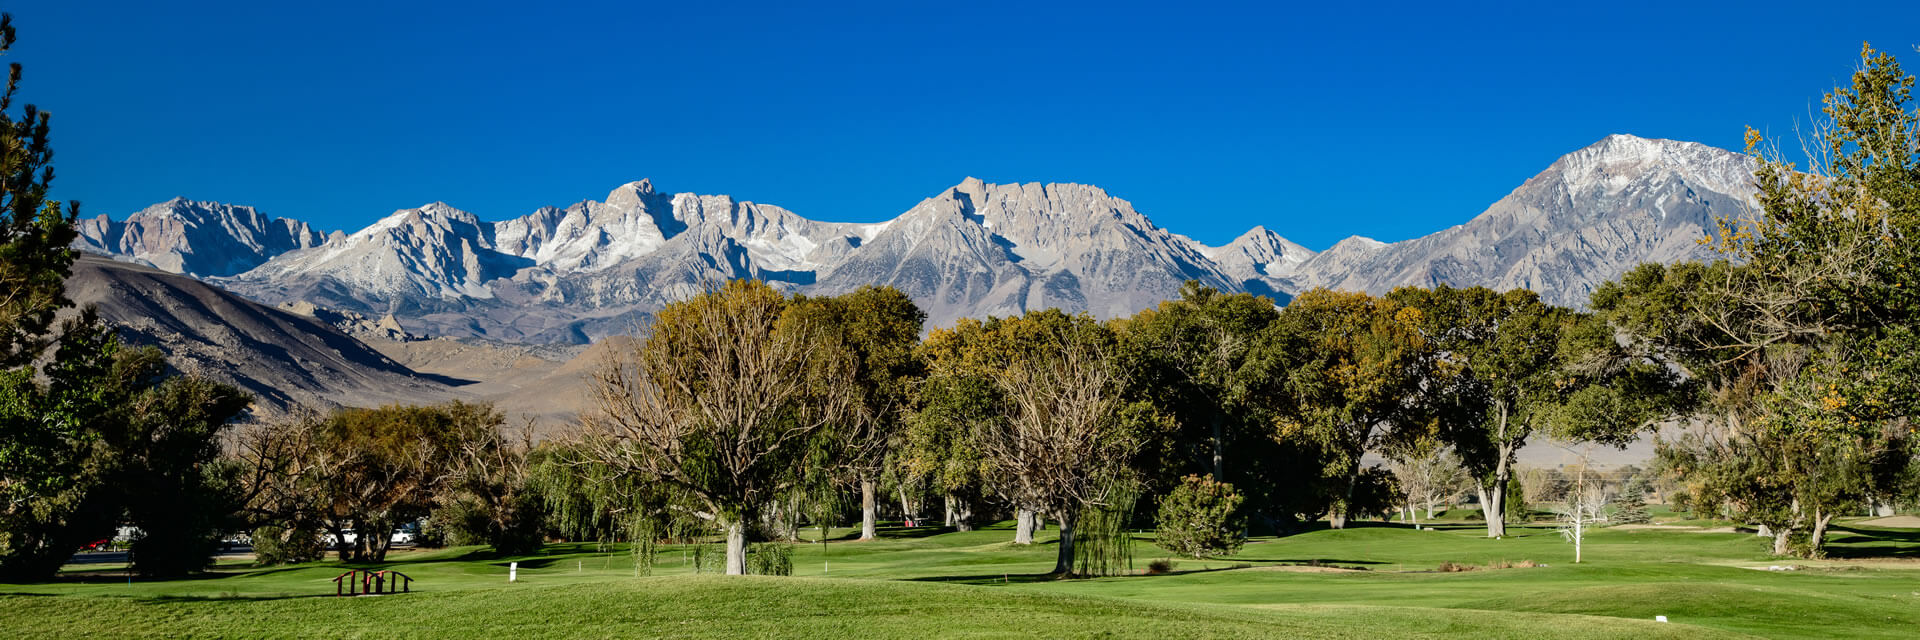 Bishop Country Club golf course with the Sierra Nevada mountain range